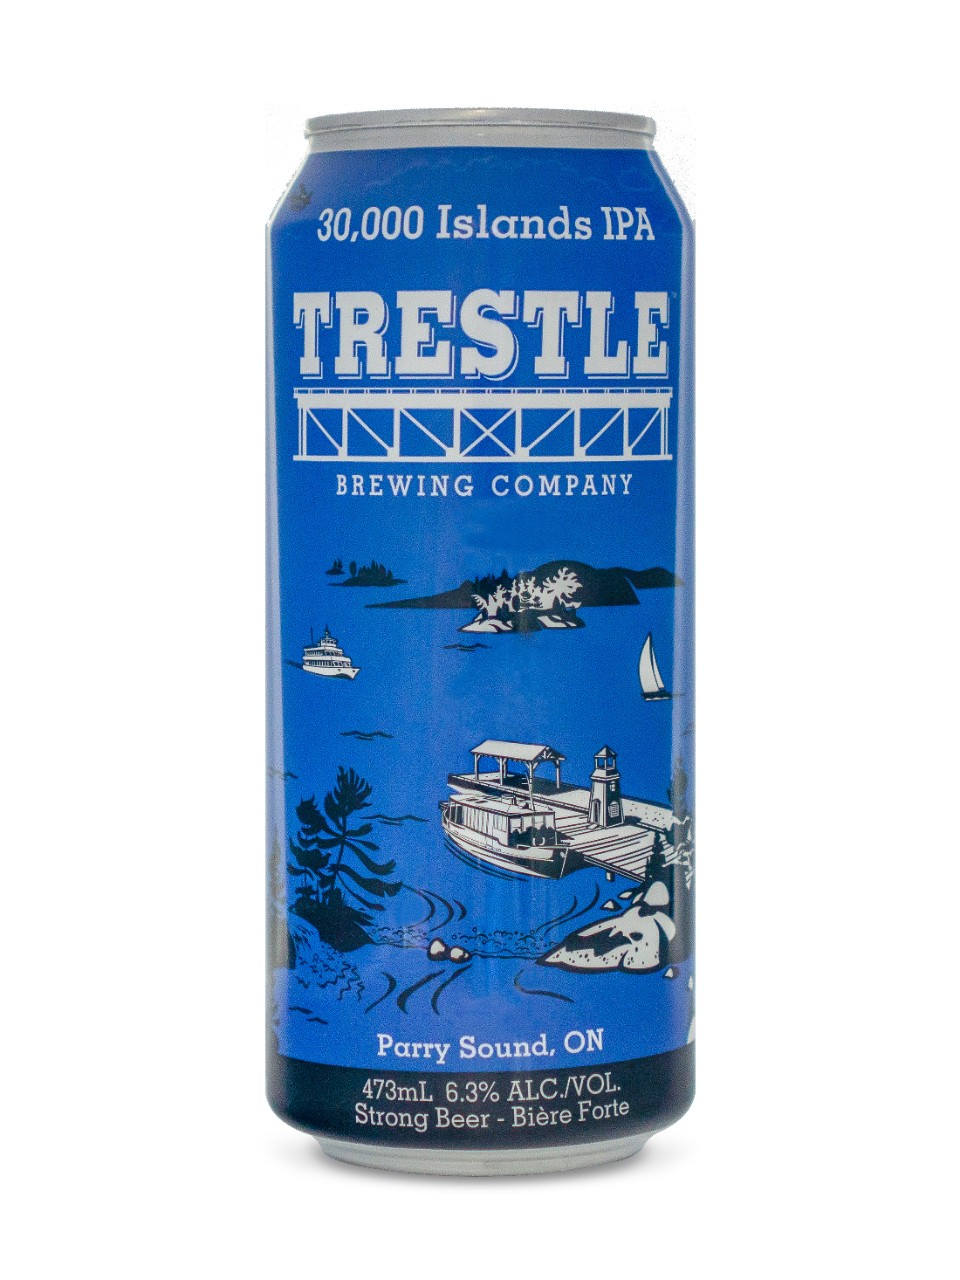 Trestle Brewing Co. 30, 000 Islands IPA from LCBO